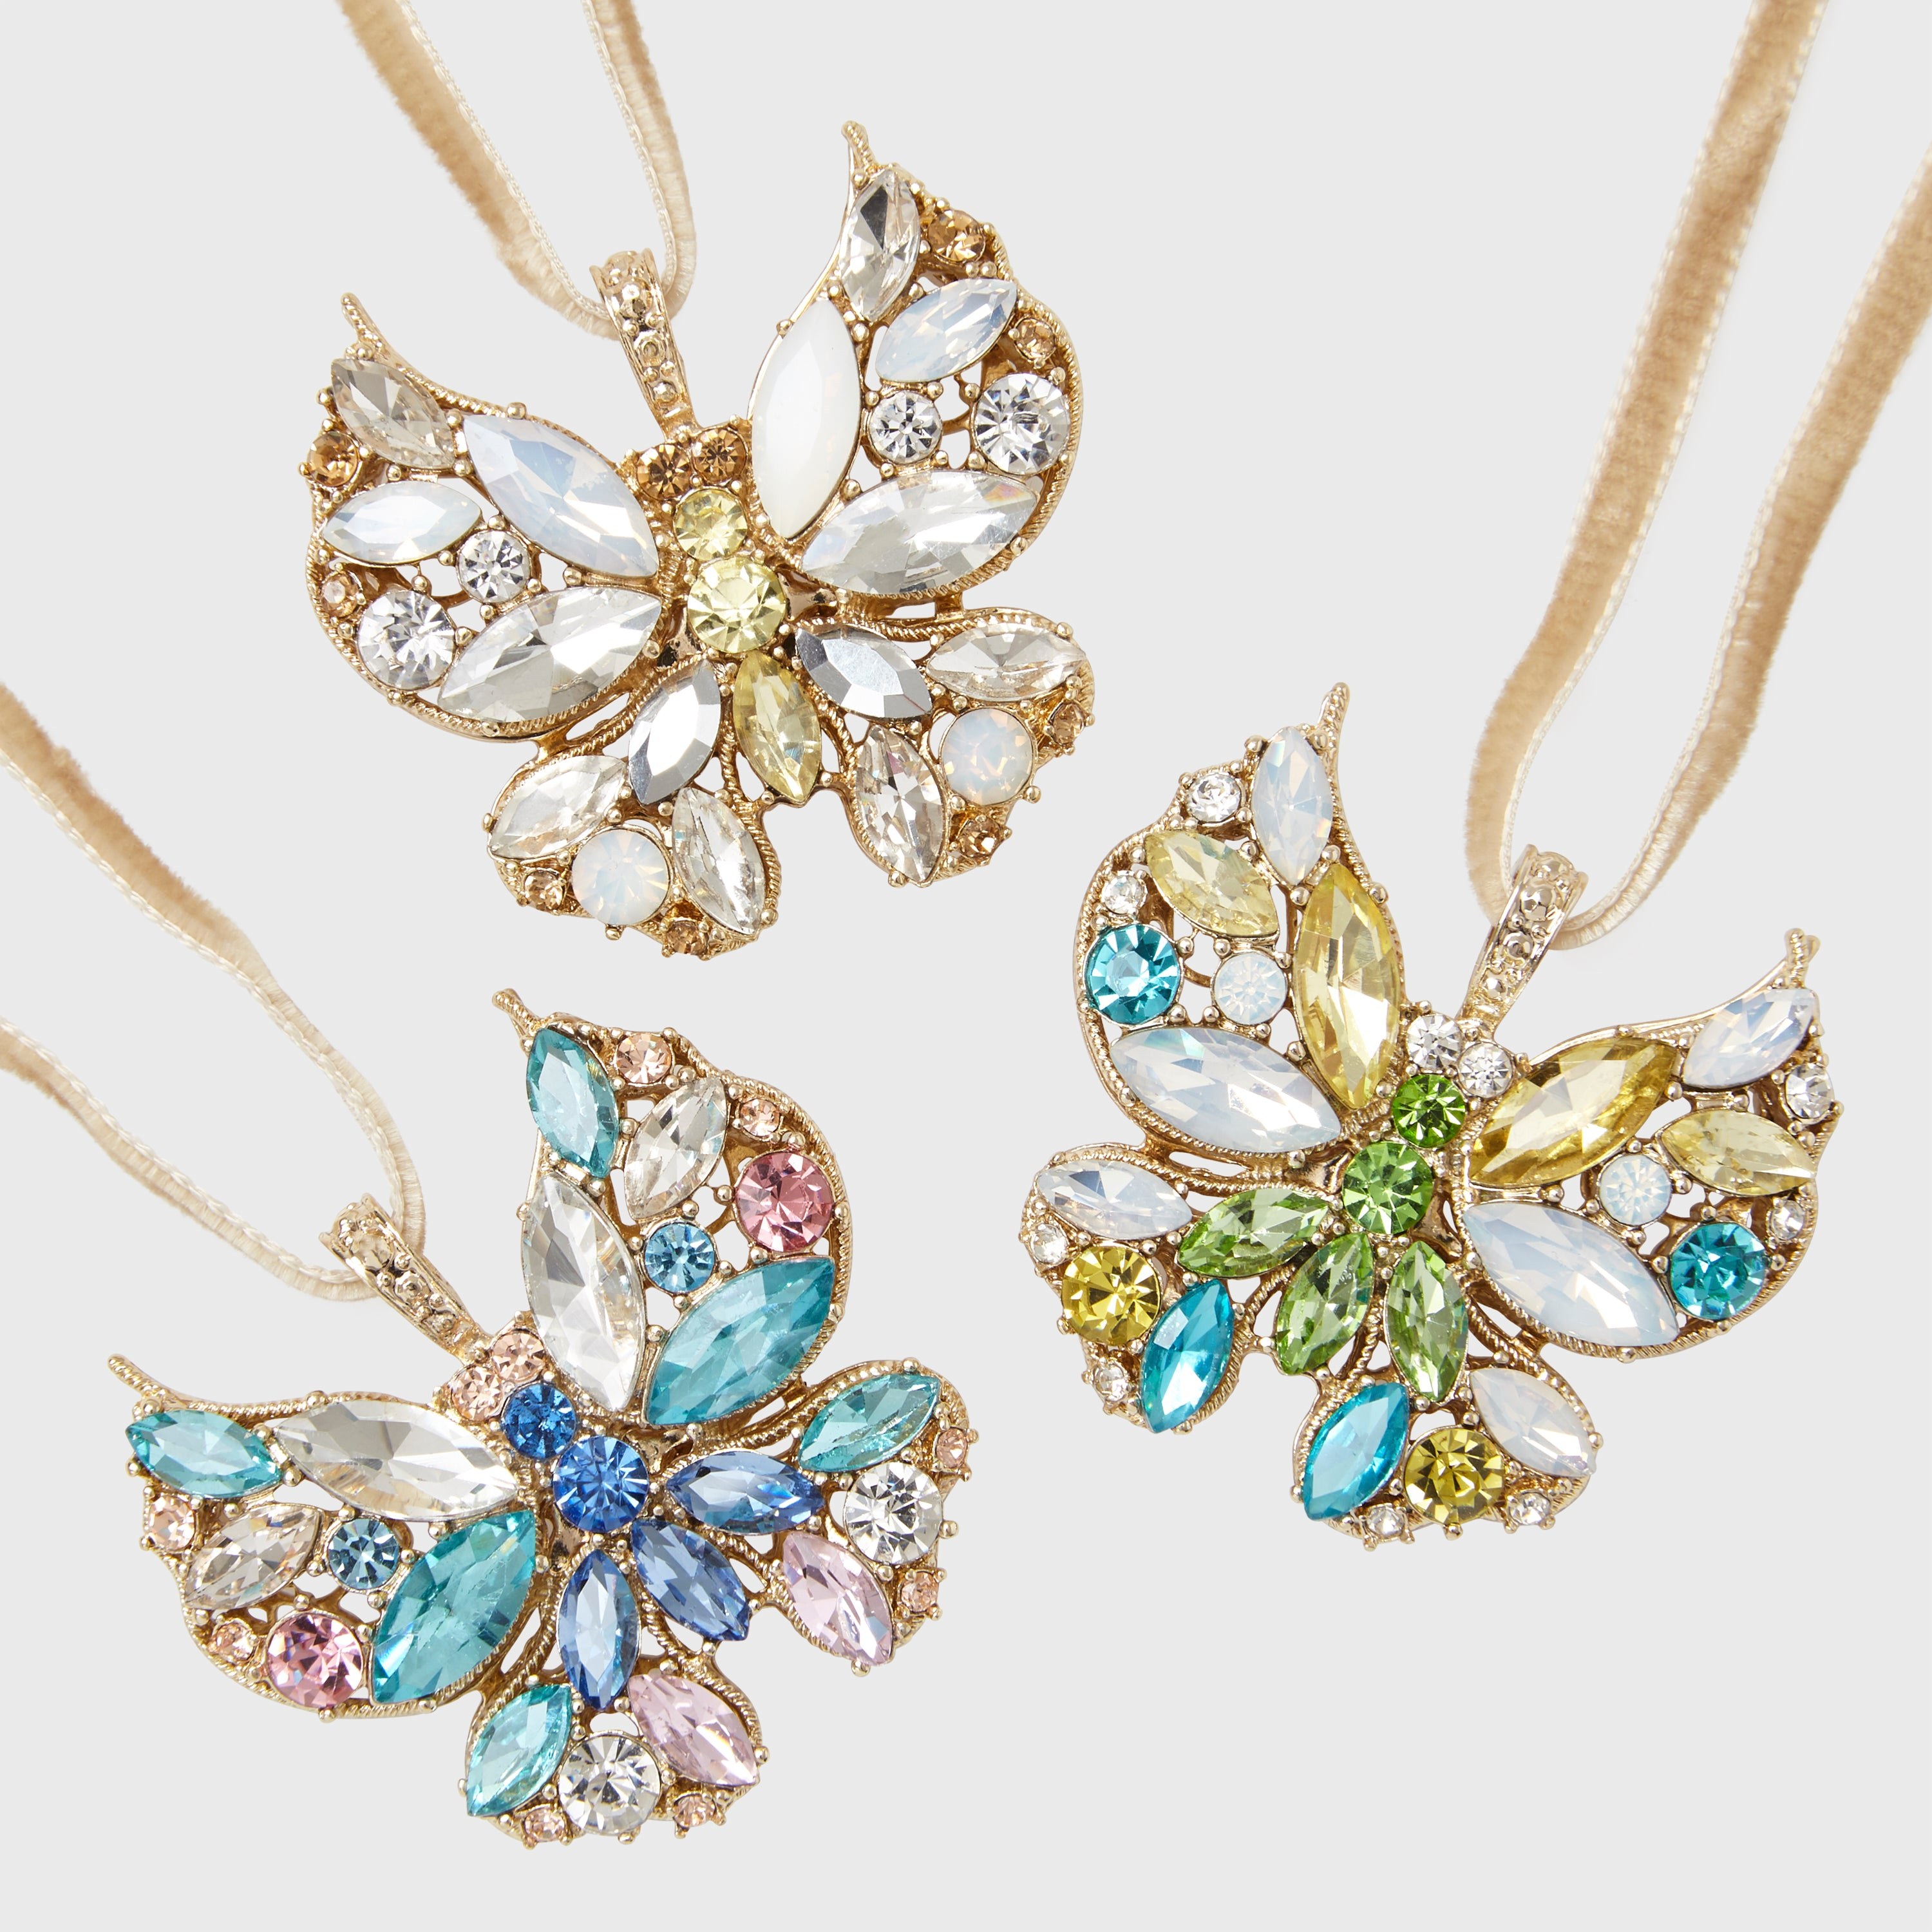 Image of Butterfly ornaments